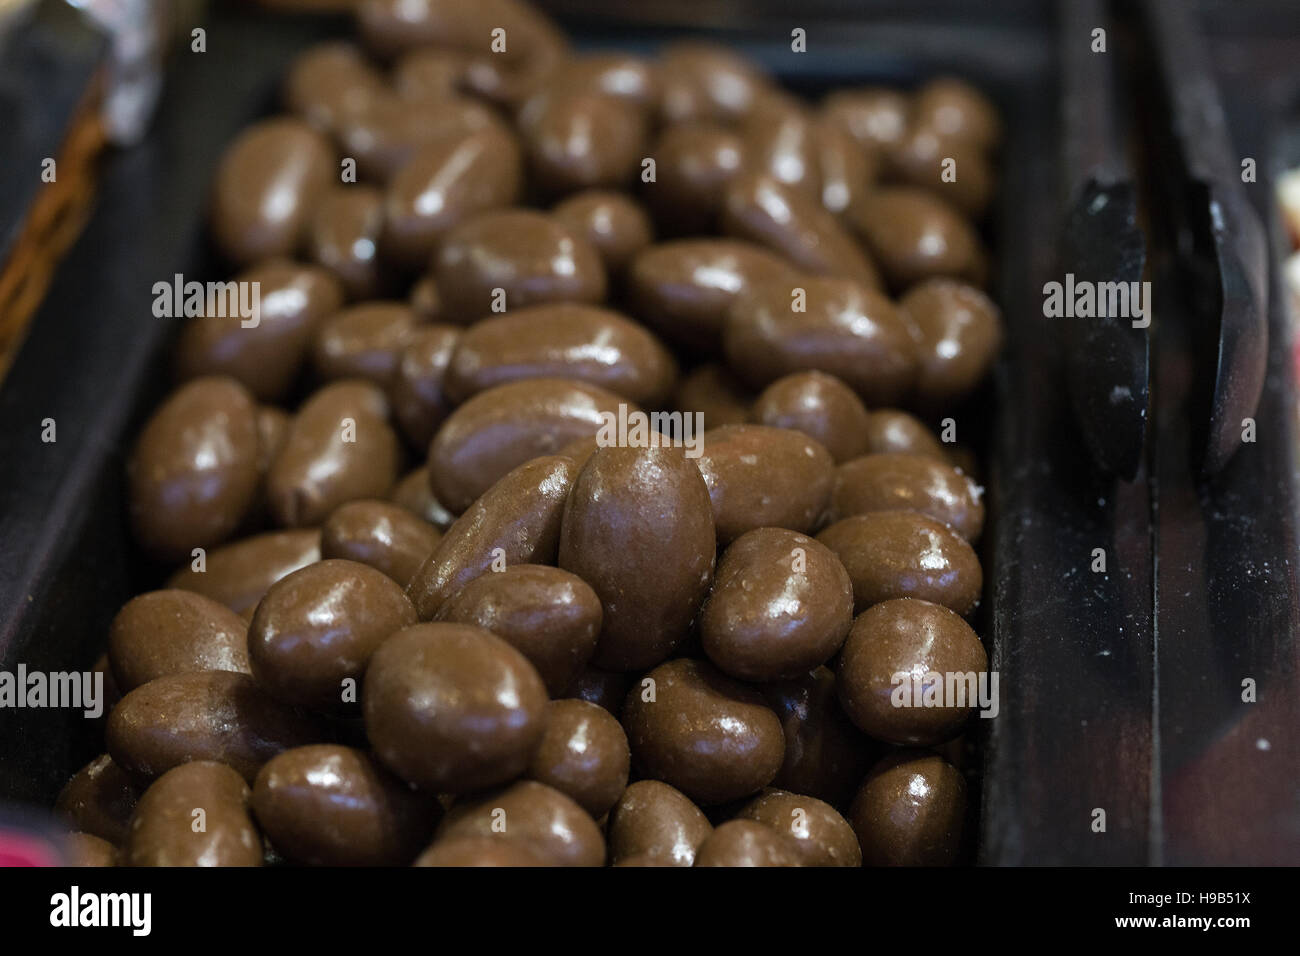 Chocolate beans in tray at artisanal Christmas market Stock Photo